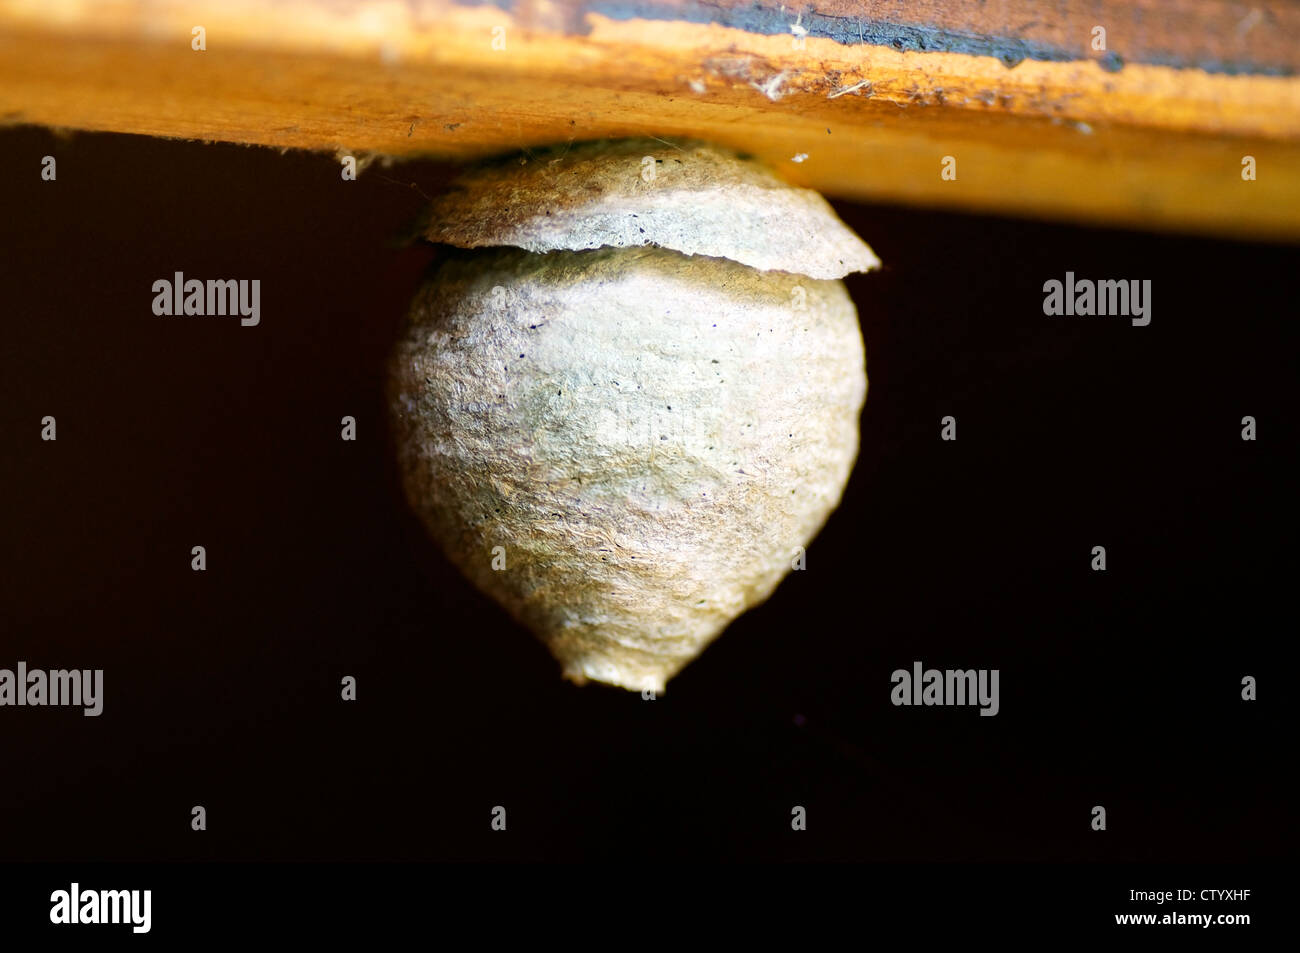 Nest of the Common Wasp, Vespula vulgaris, hanging on a plank - Stock Image